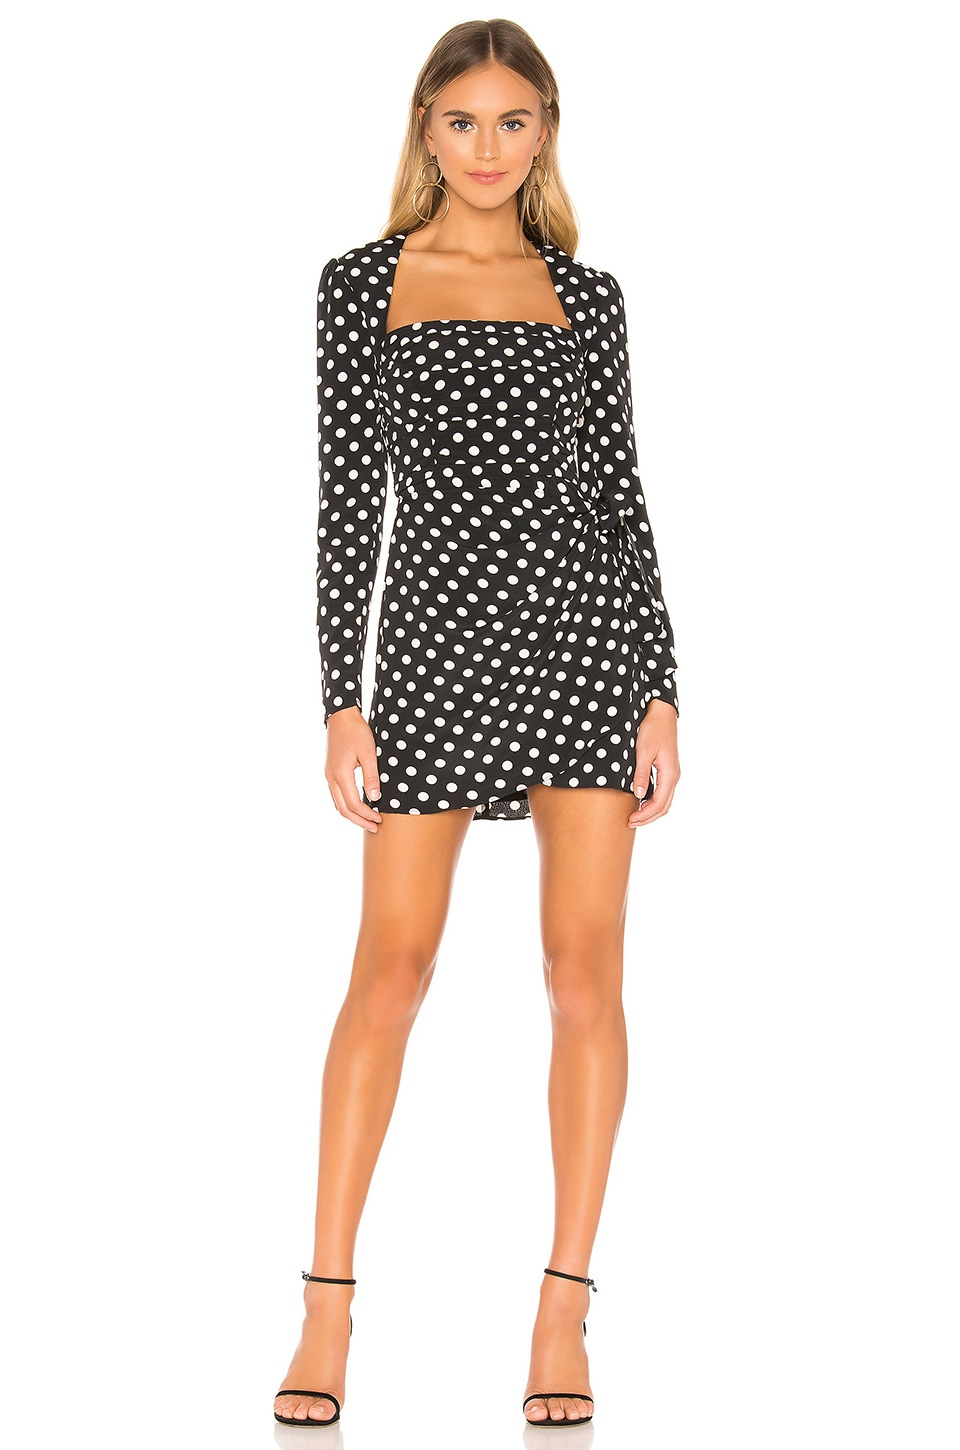 The East Order Amy Mini Dress in Merci Polka